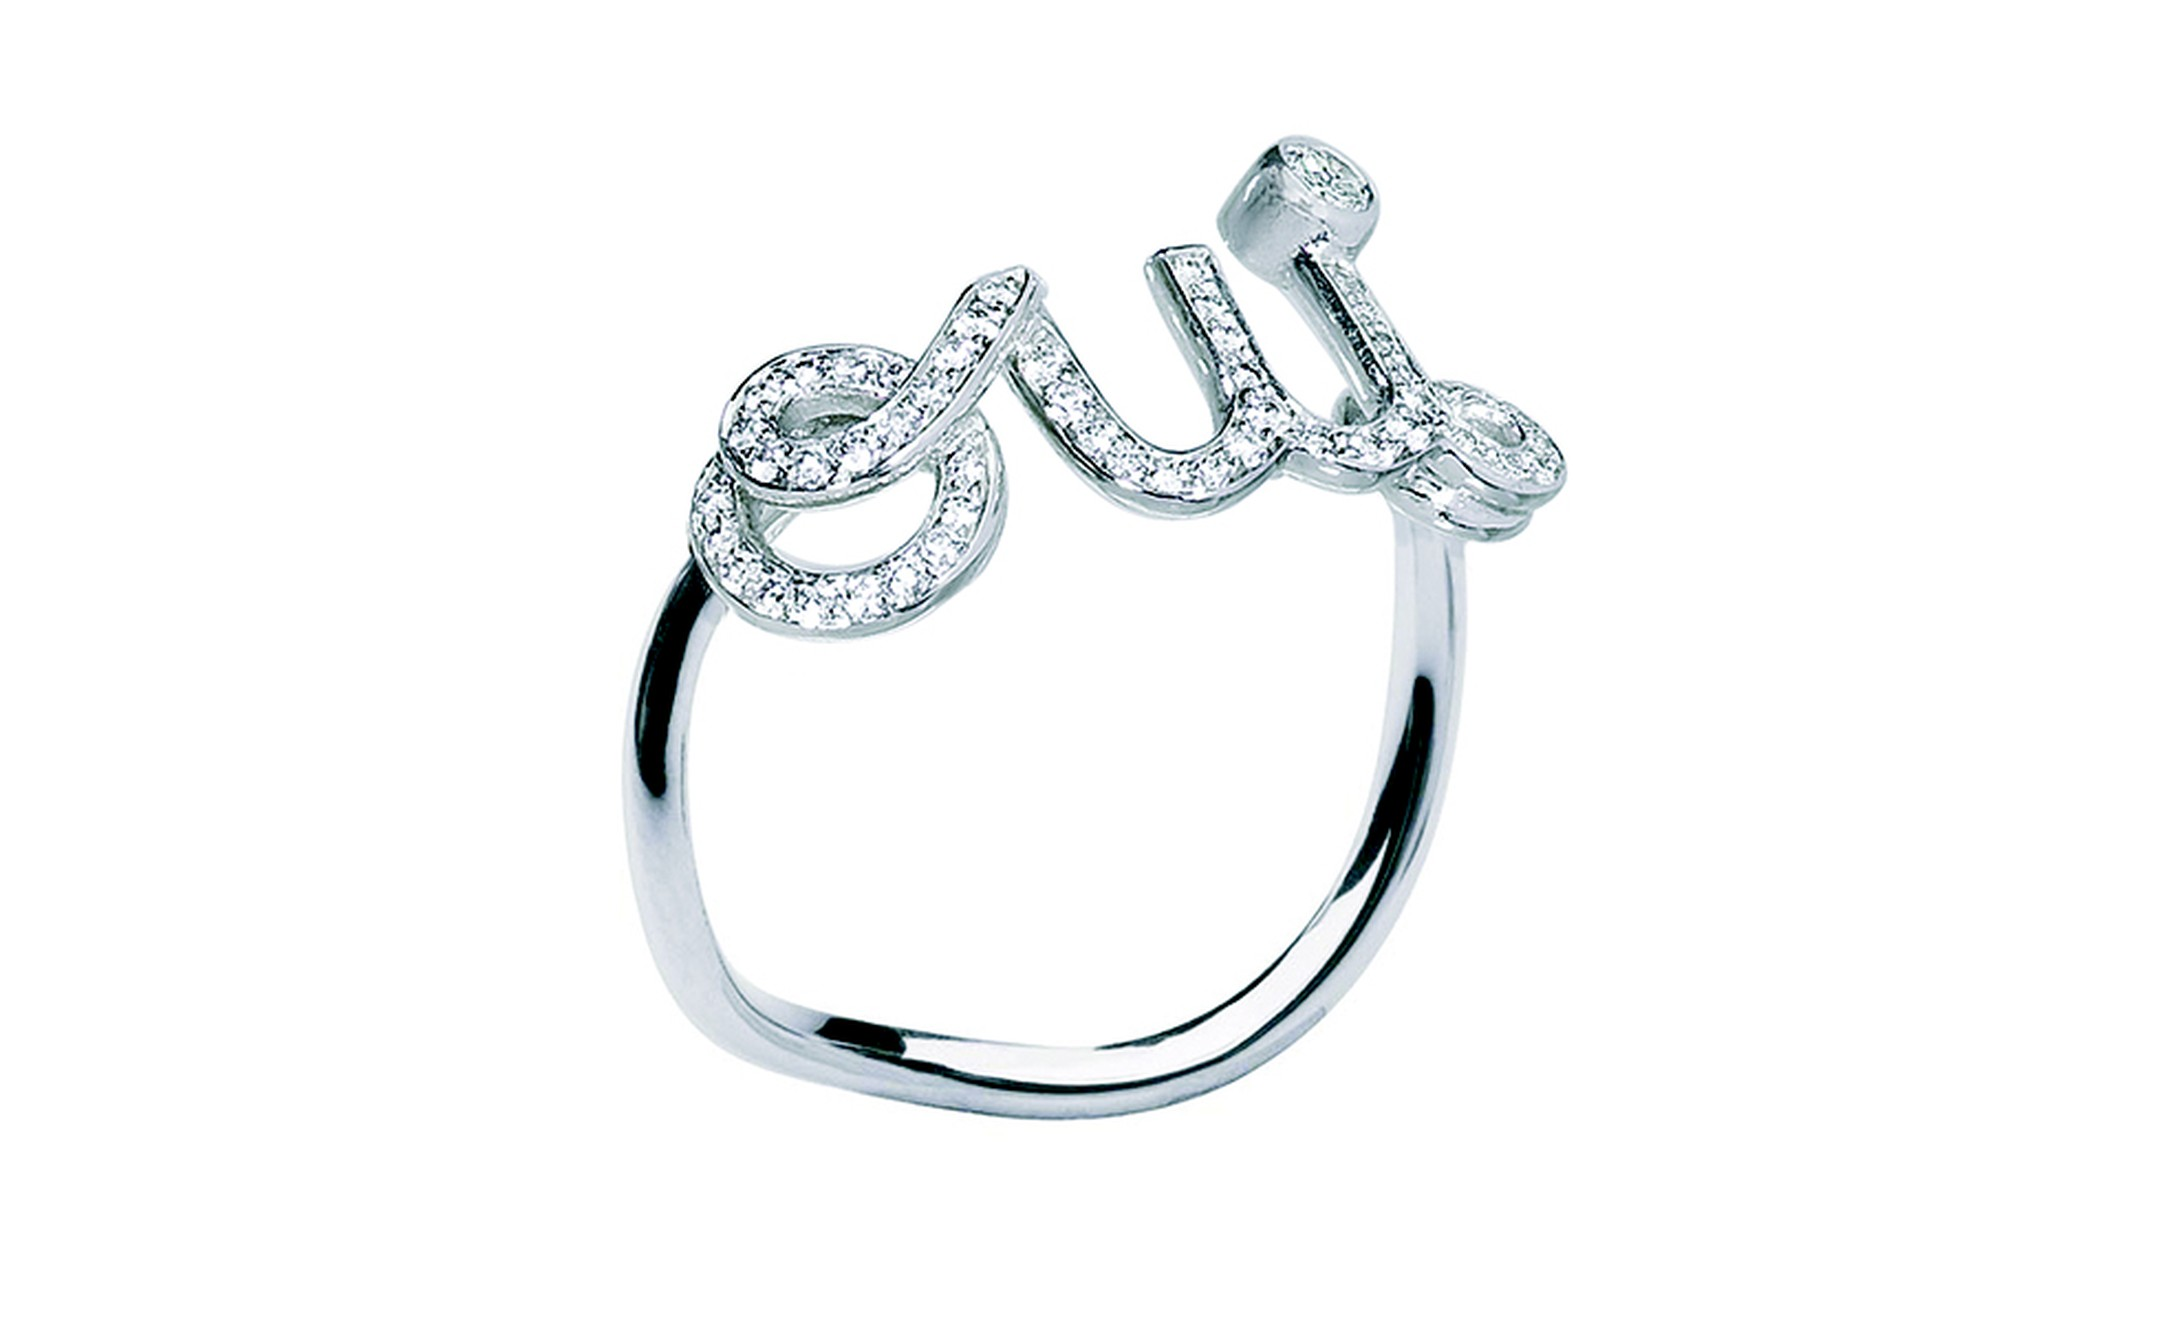 Dior Fine Jewels 'Oui' ring in white gold and diamonds £1,850